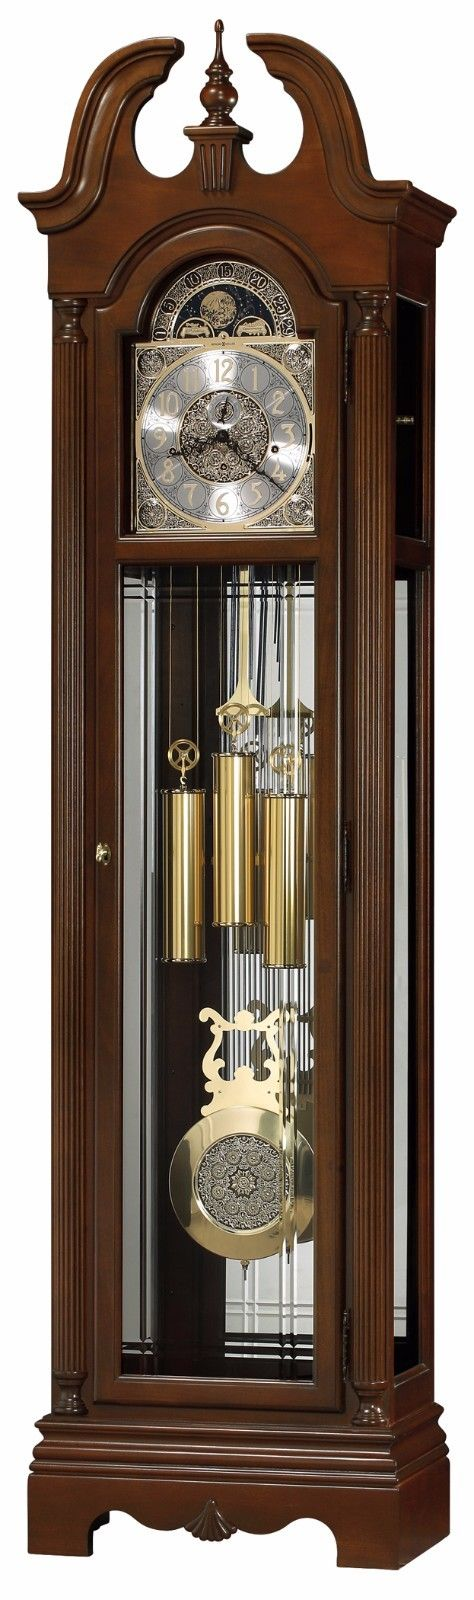 Howard Miller Harland 89th Anniversary Grandfather Floor Clock 611-242